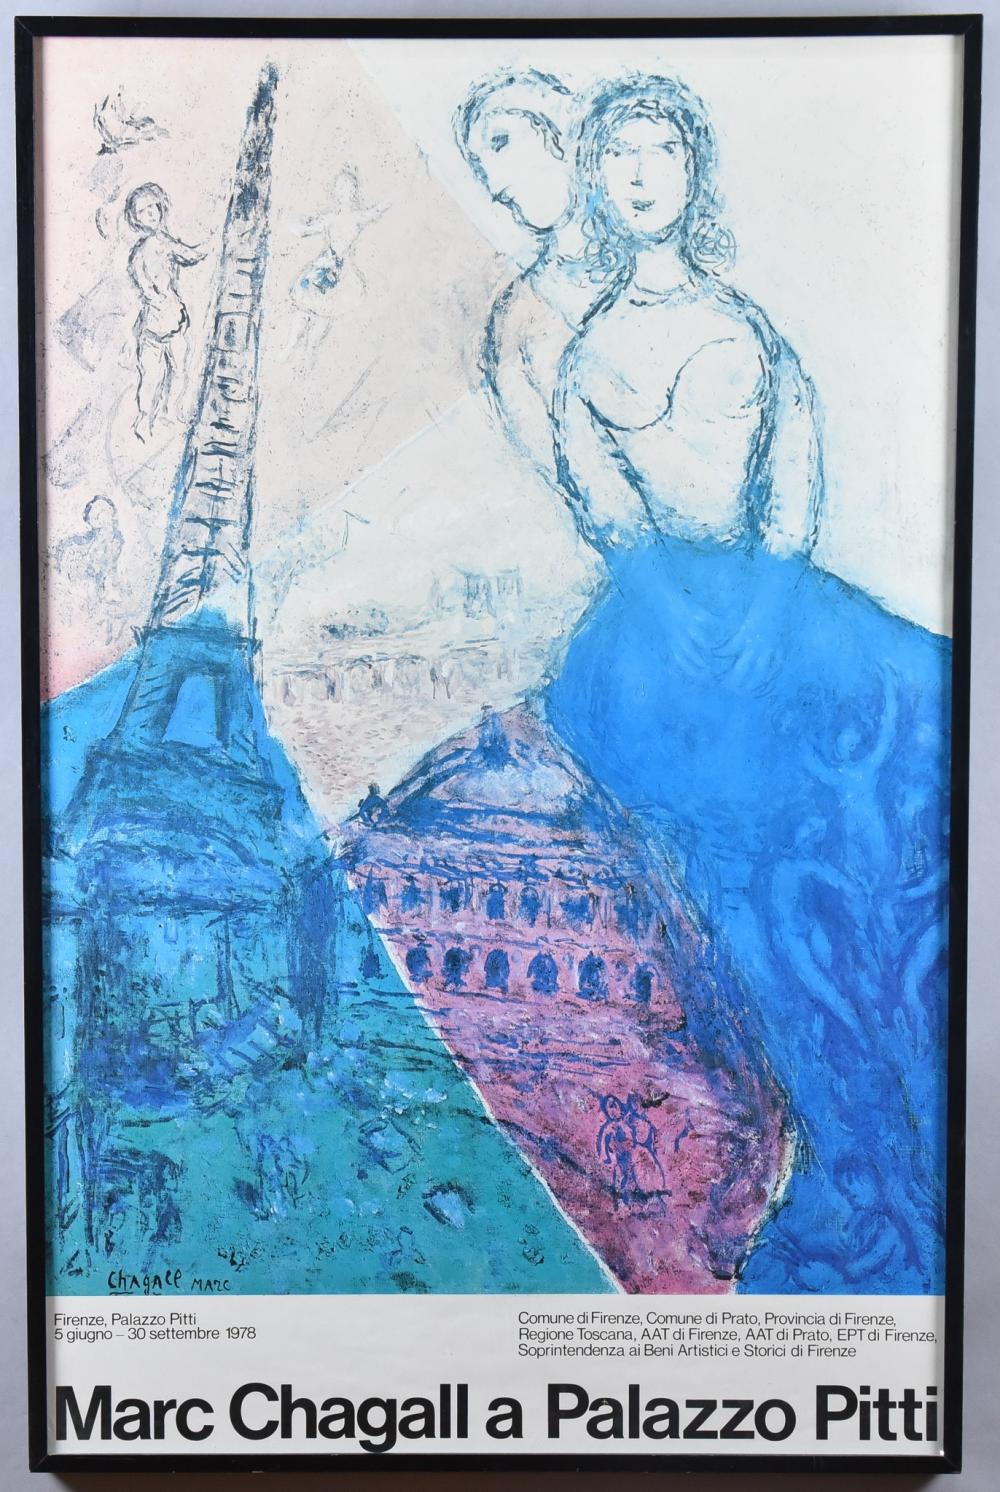 Marc Chagall, New York / France, Russian Federation (1887-1985), Marc Chagall a Palazzo Pitti, offset color lithograph, 39 x 25 inches